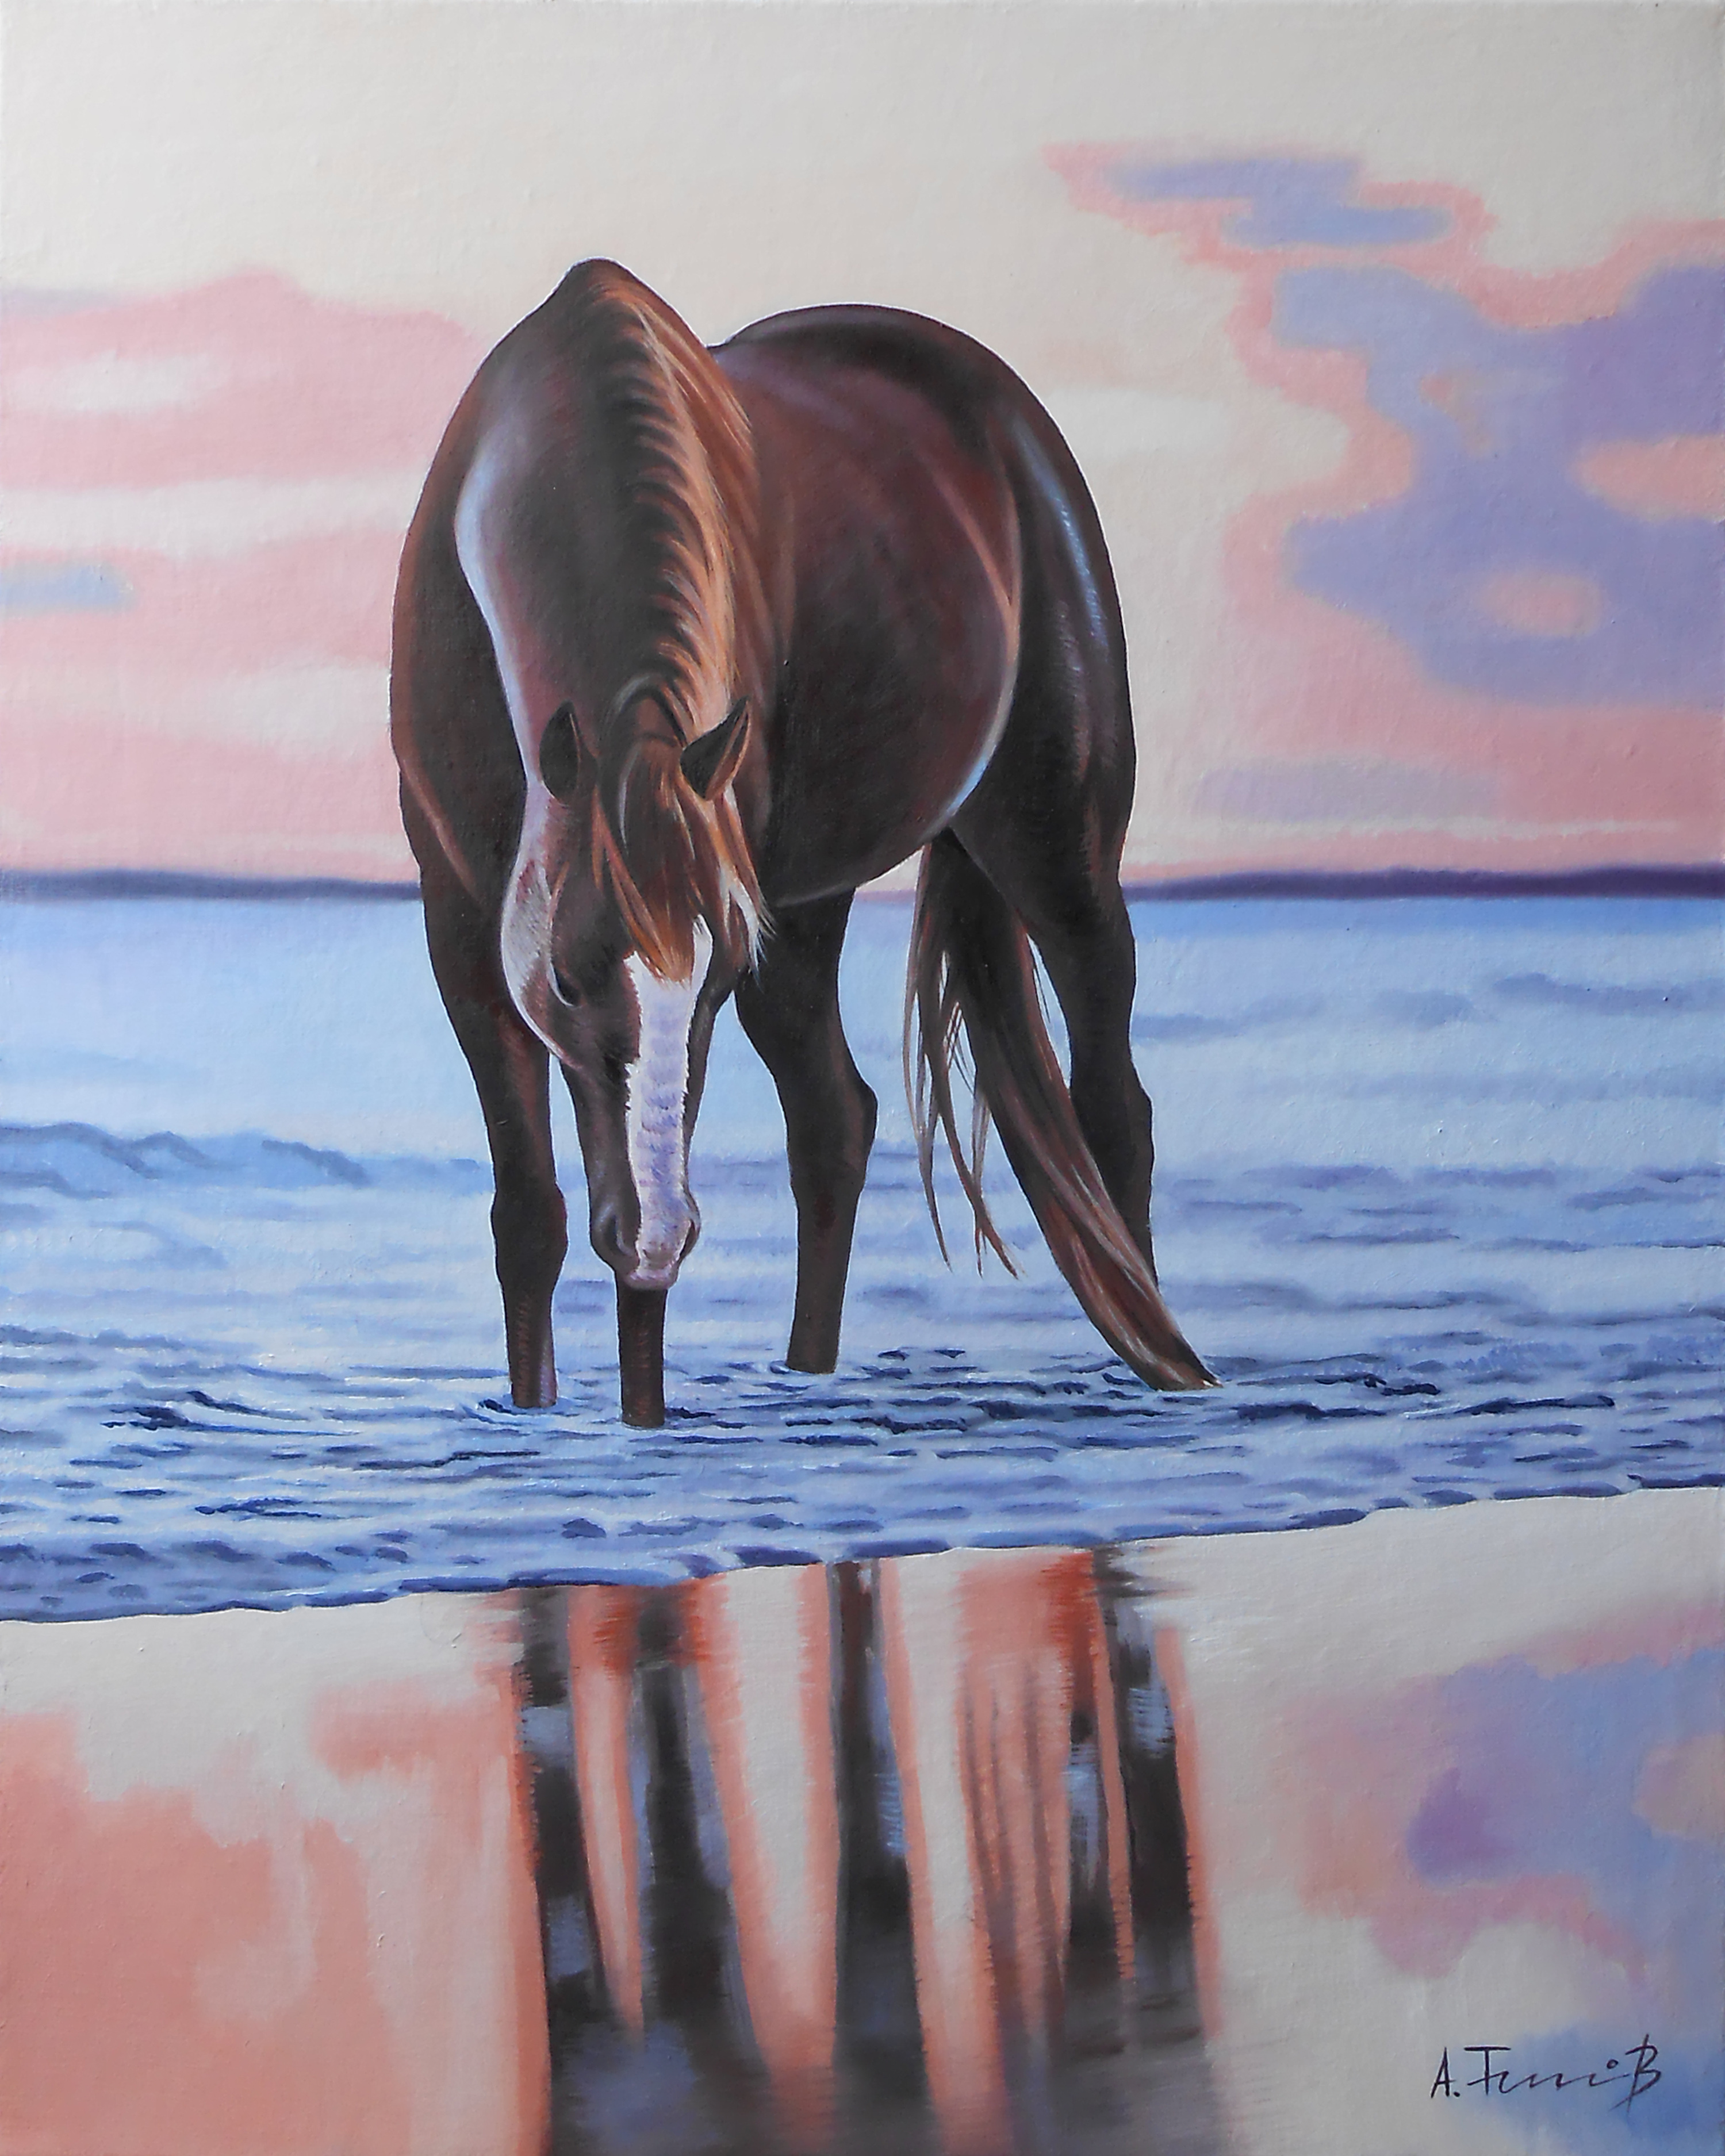 Seascape with Horse